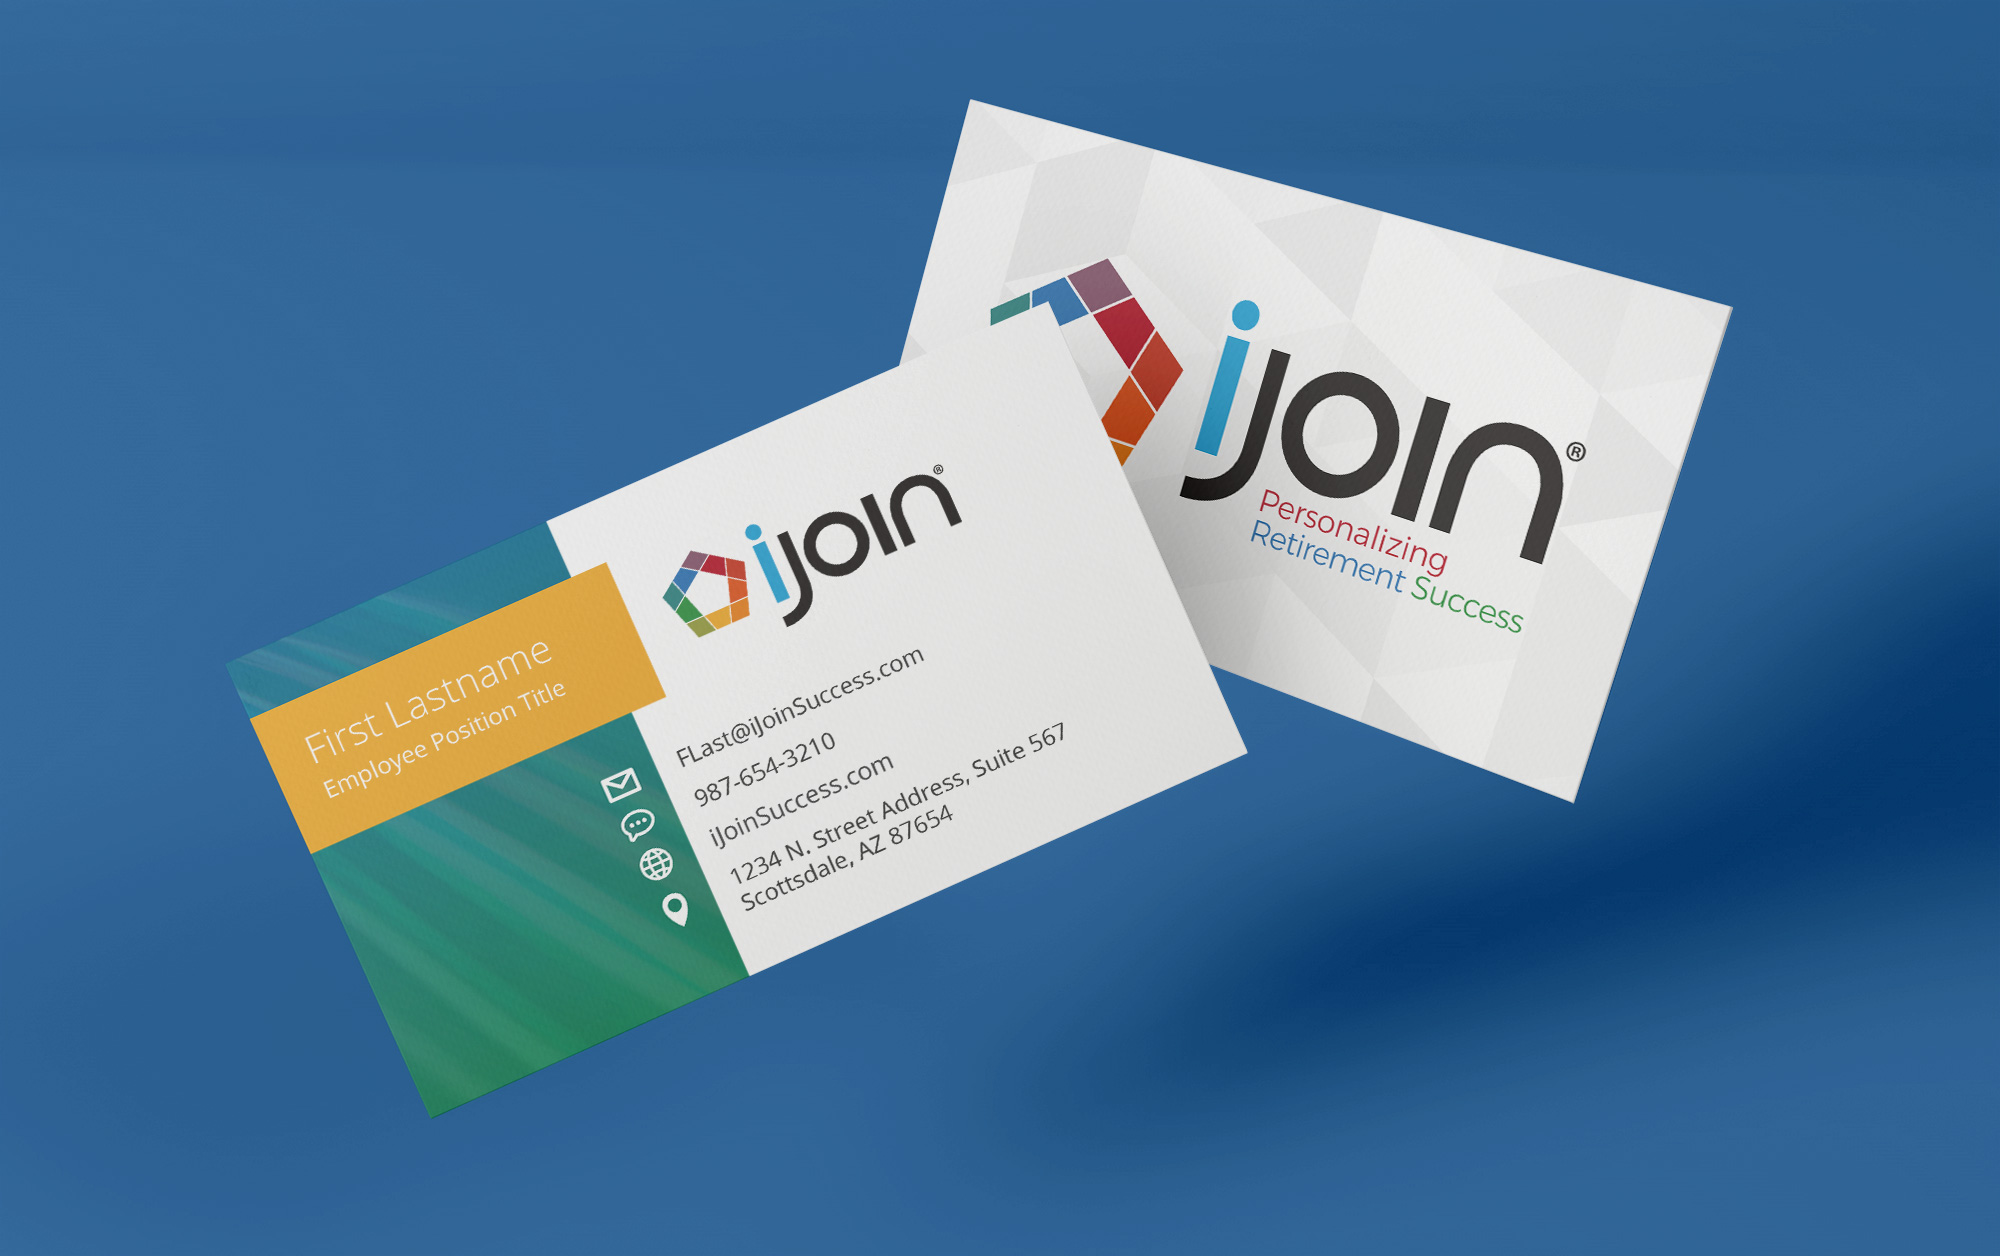 iJoin business card design